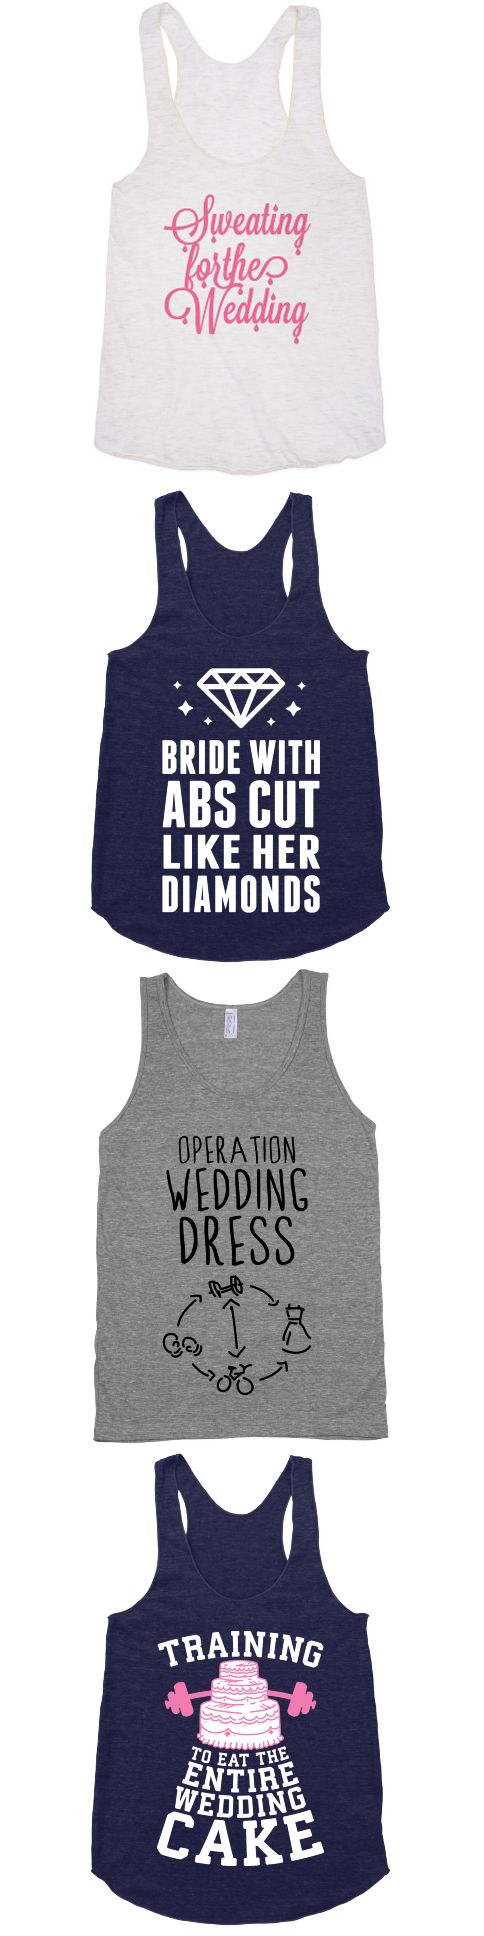 It's time to start sweating for the wedding.